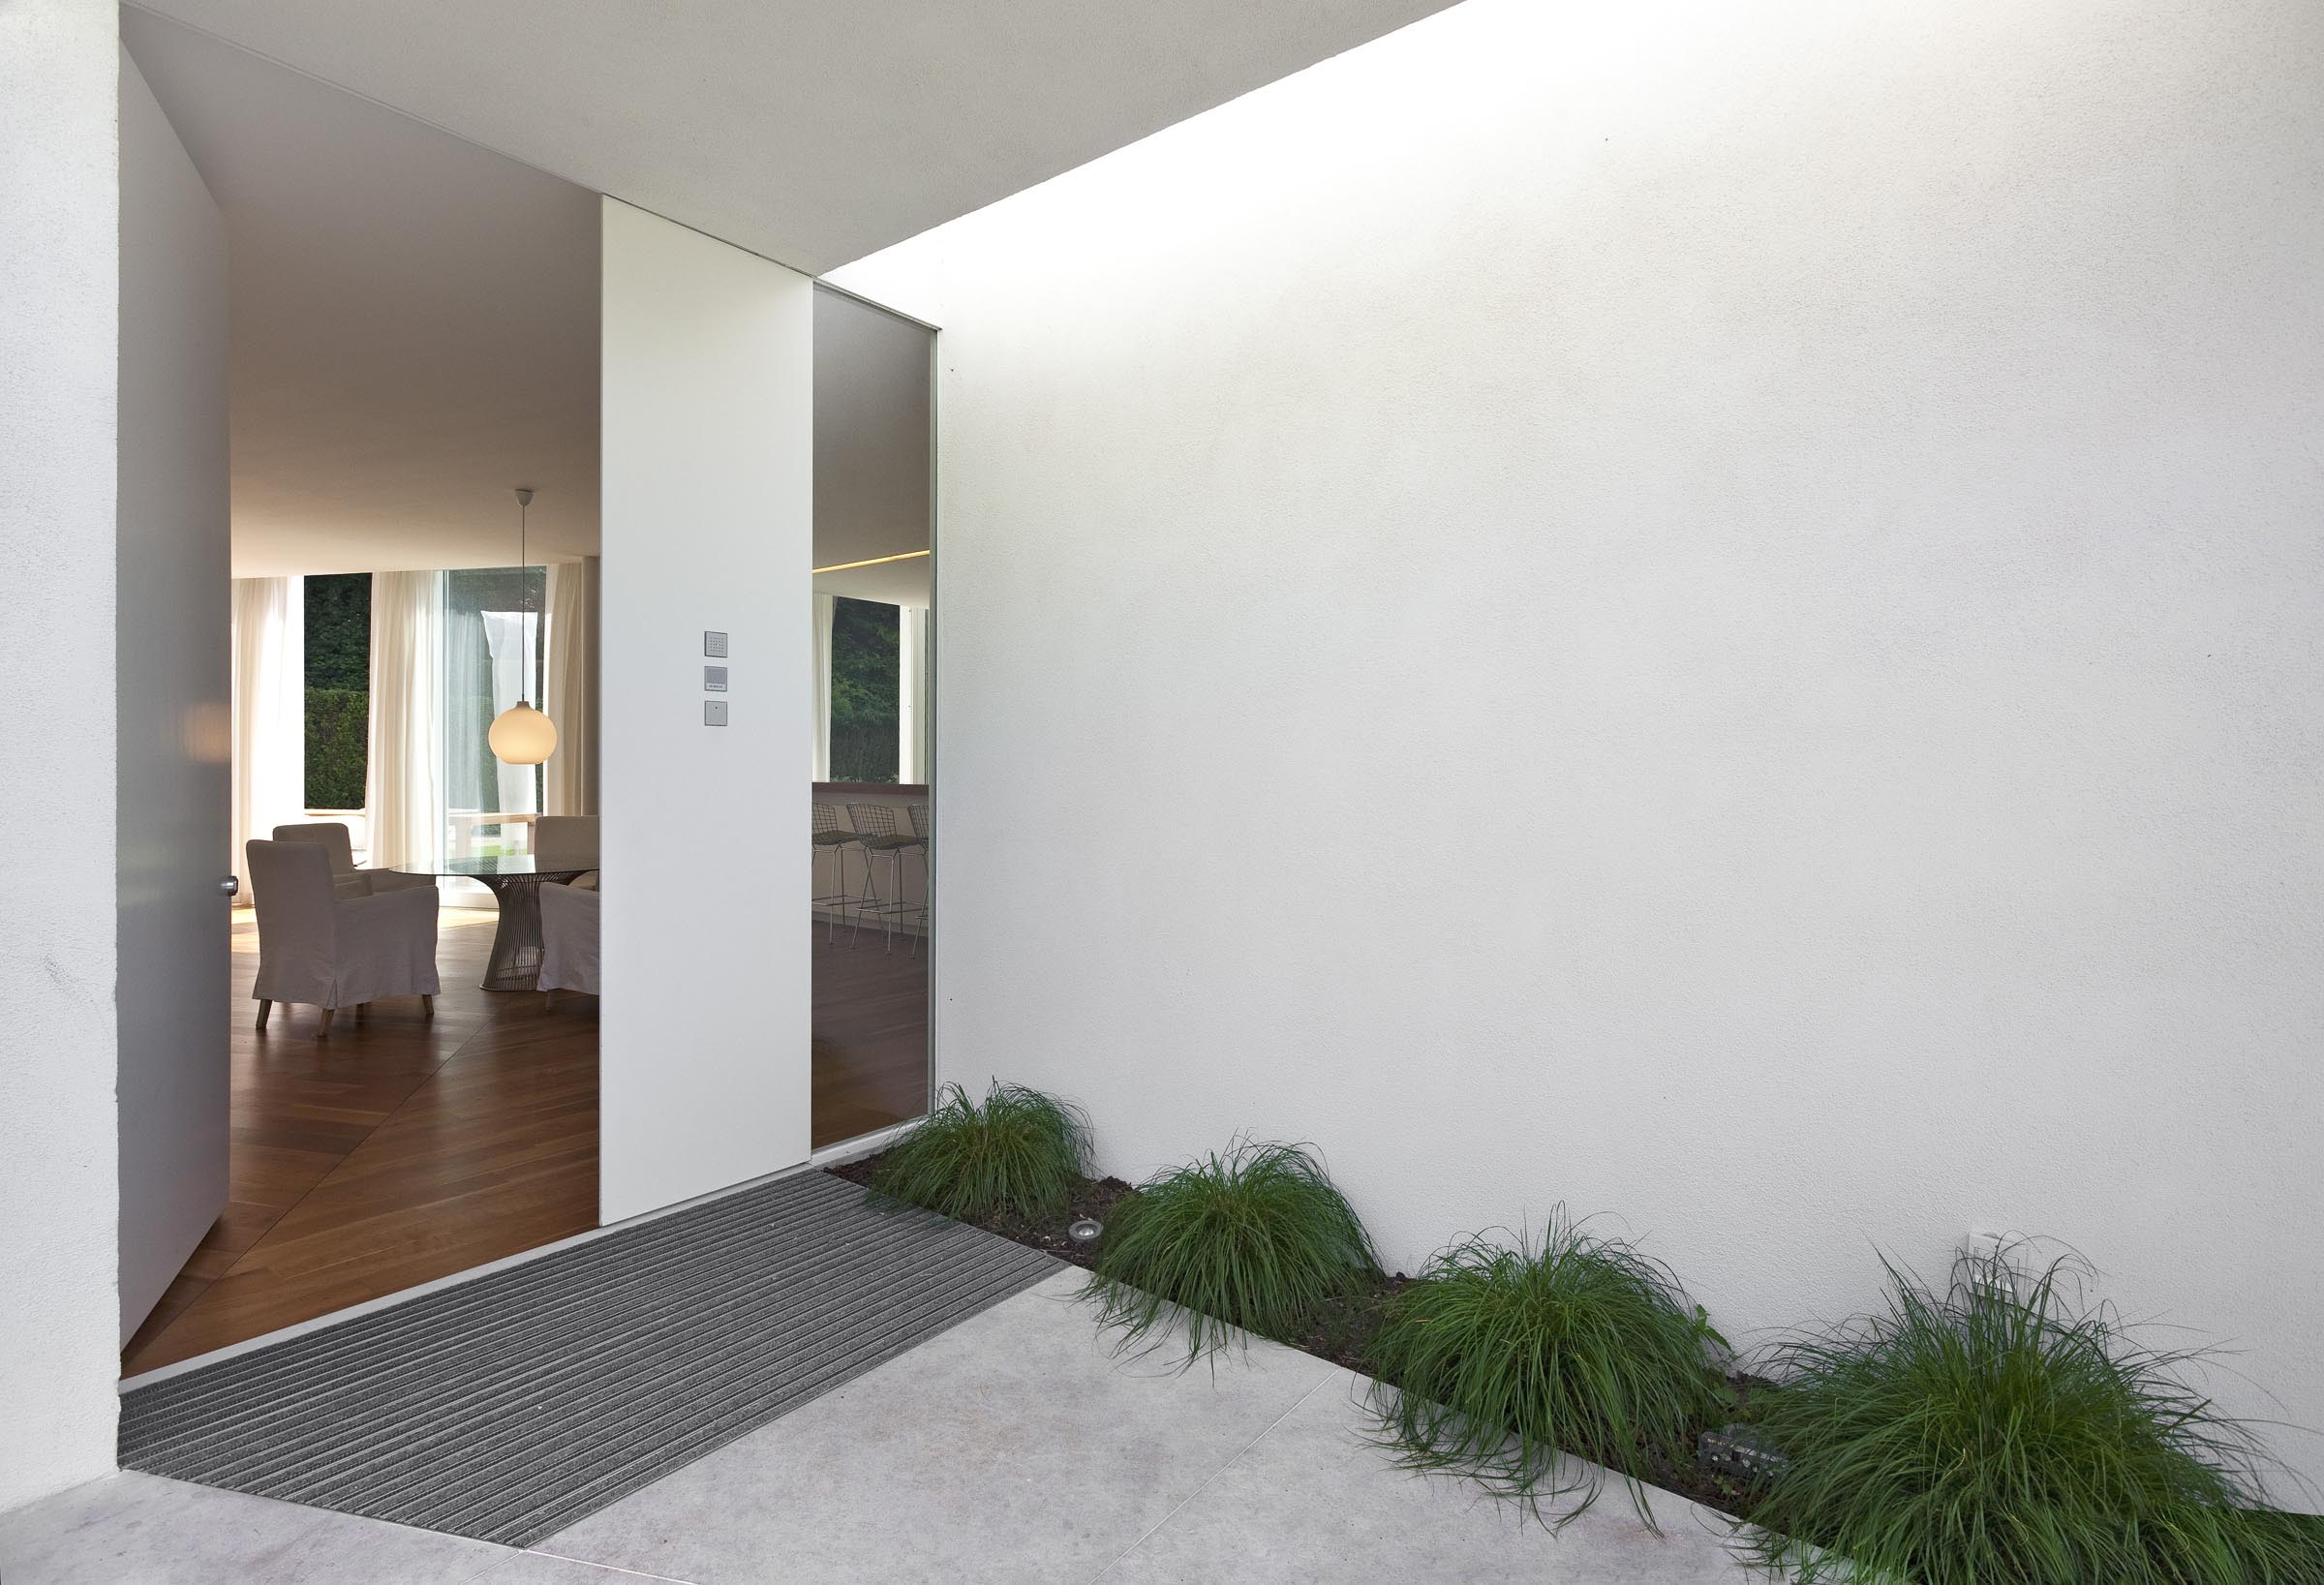 The house in the style of minimalism: simplicity and convenience